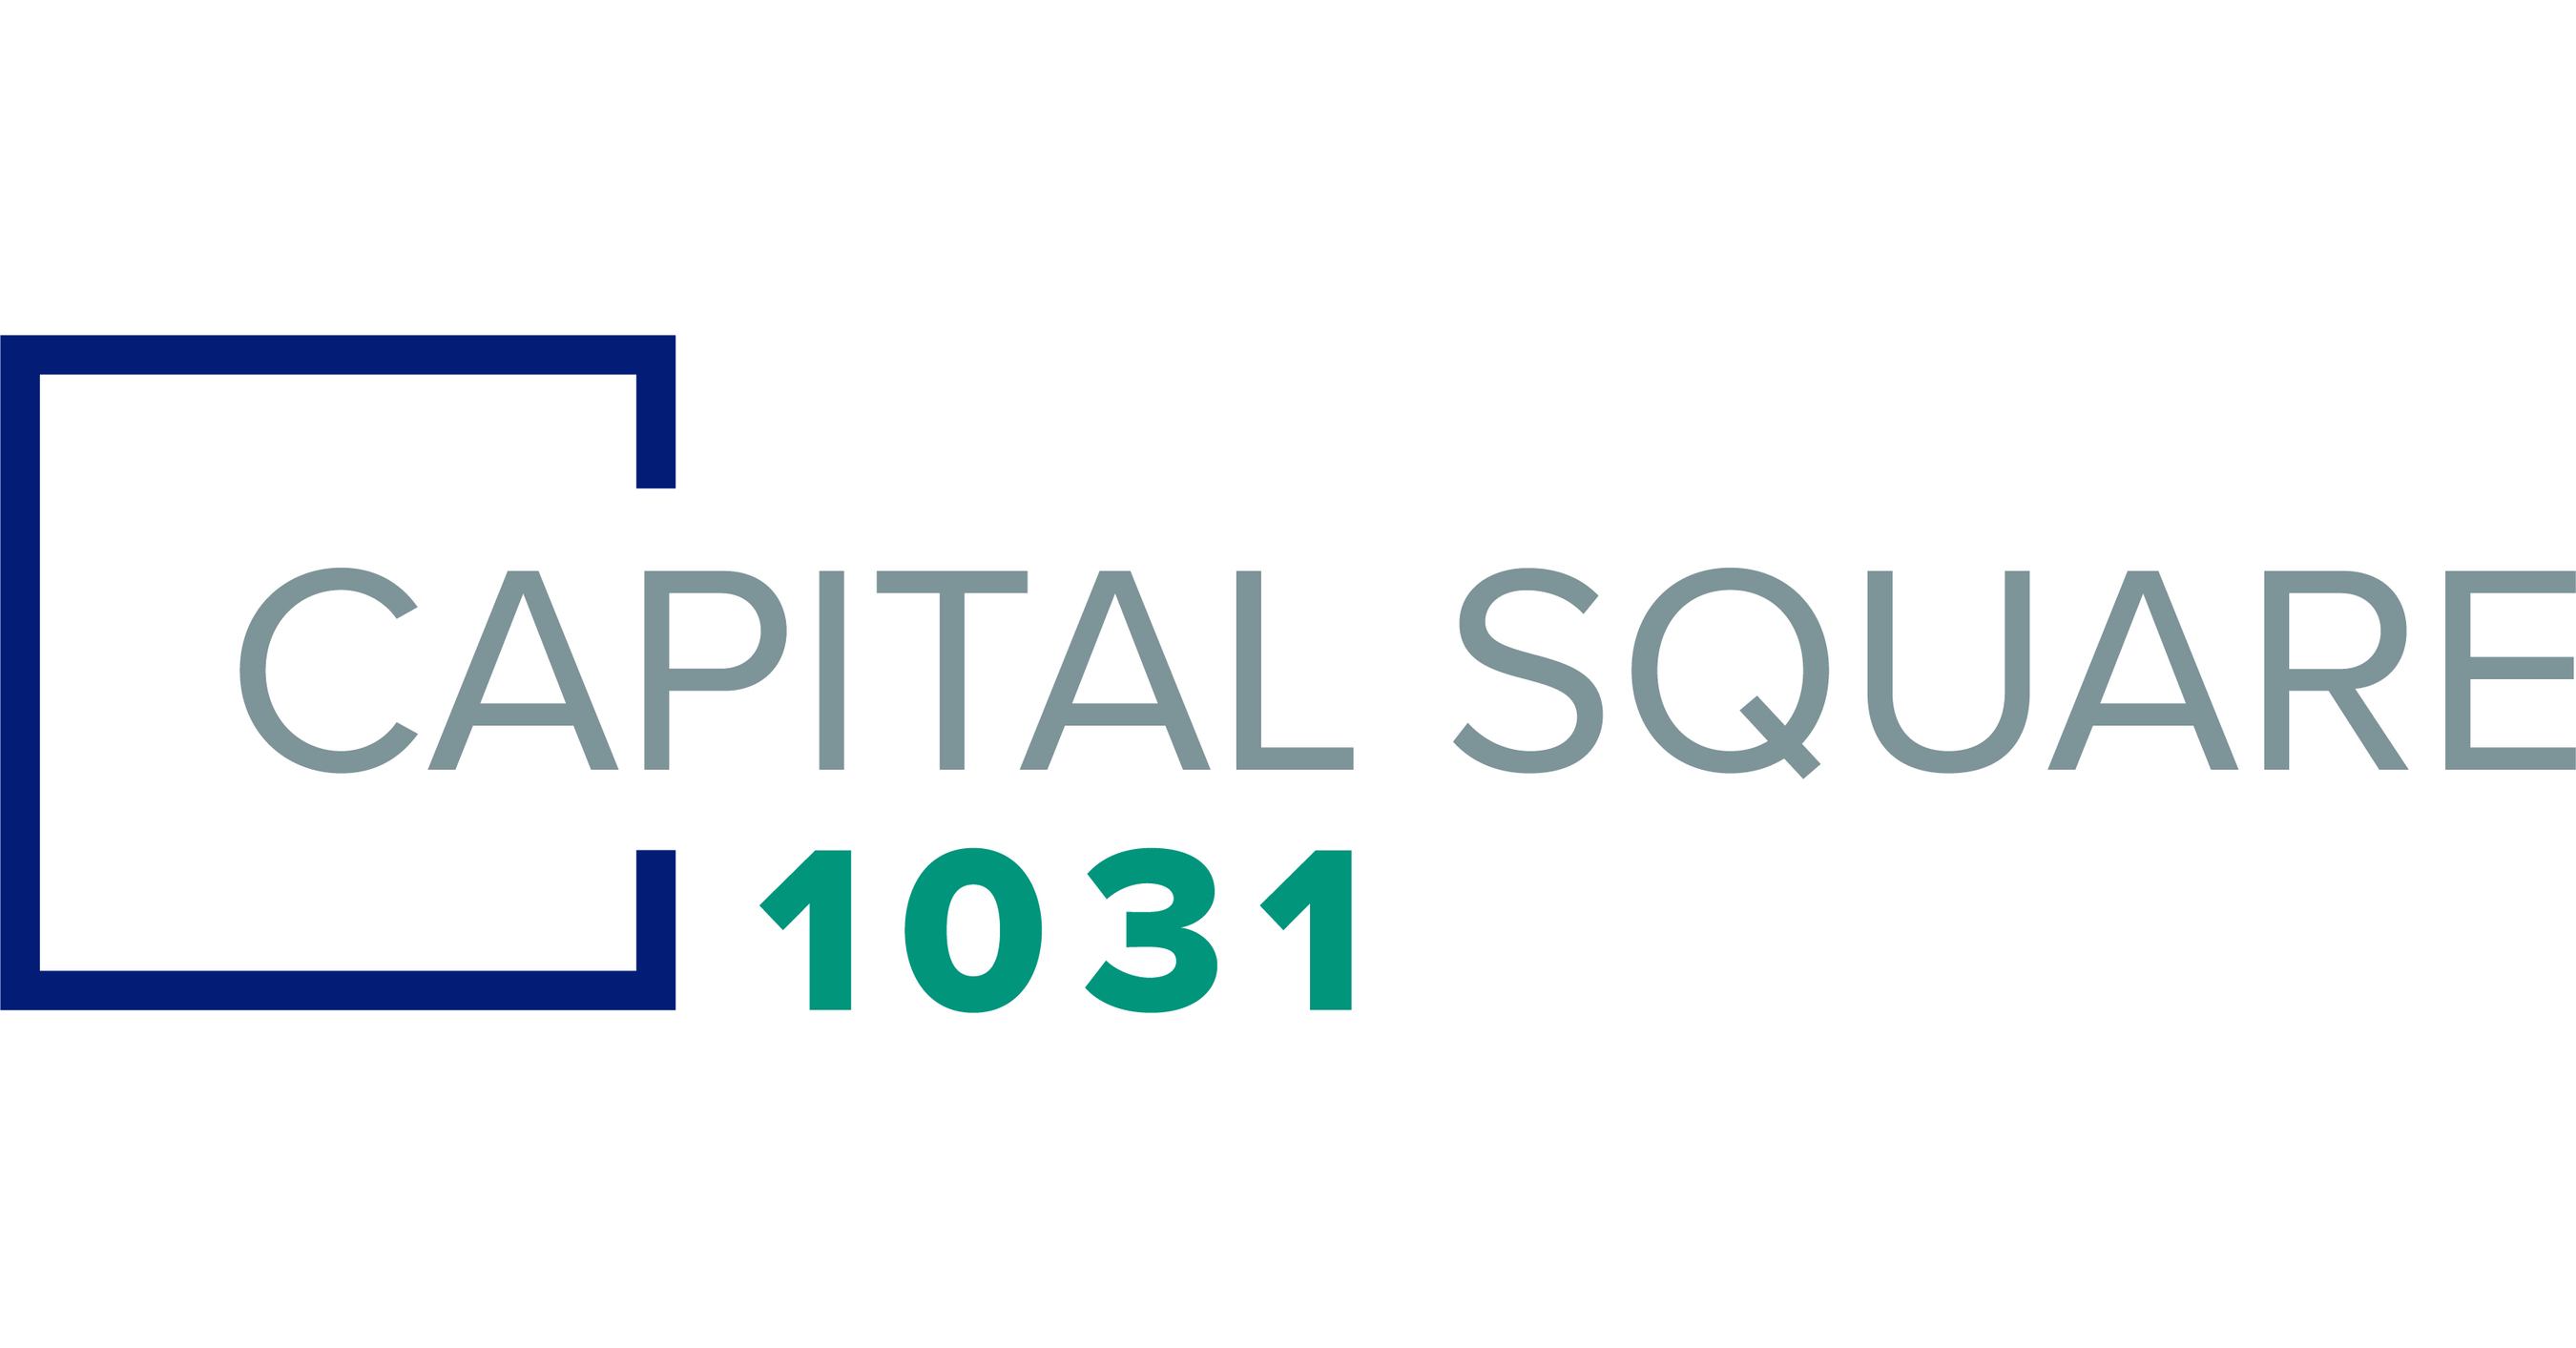 Access here alternative investment news about Capital Square 1031 Acquires Newly Constructed, Luxury Multifamily Community In Downtown Chattanooga